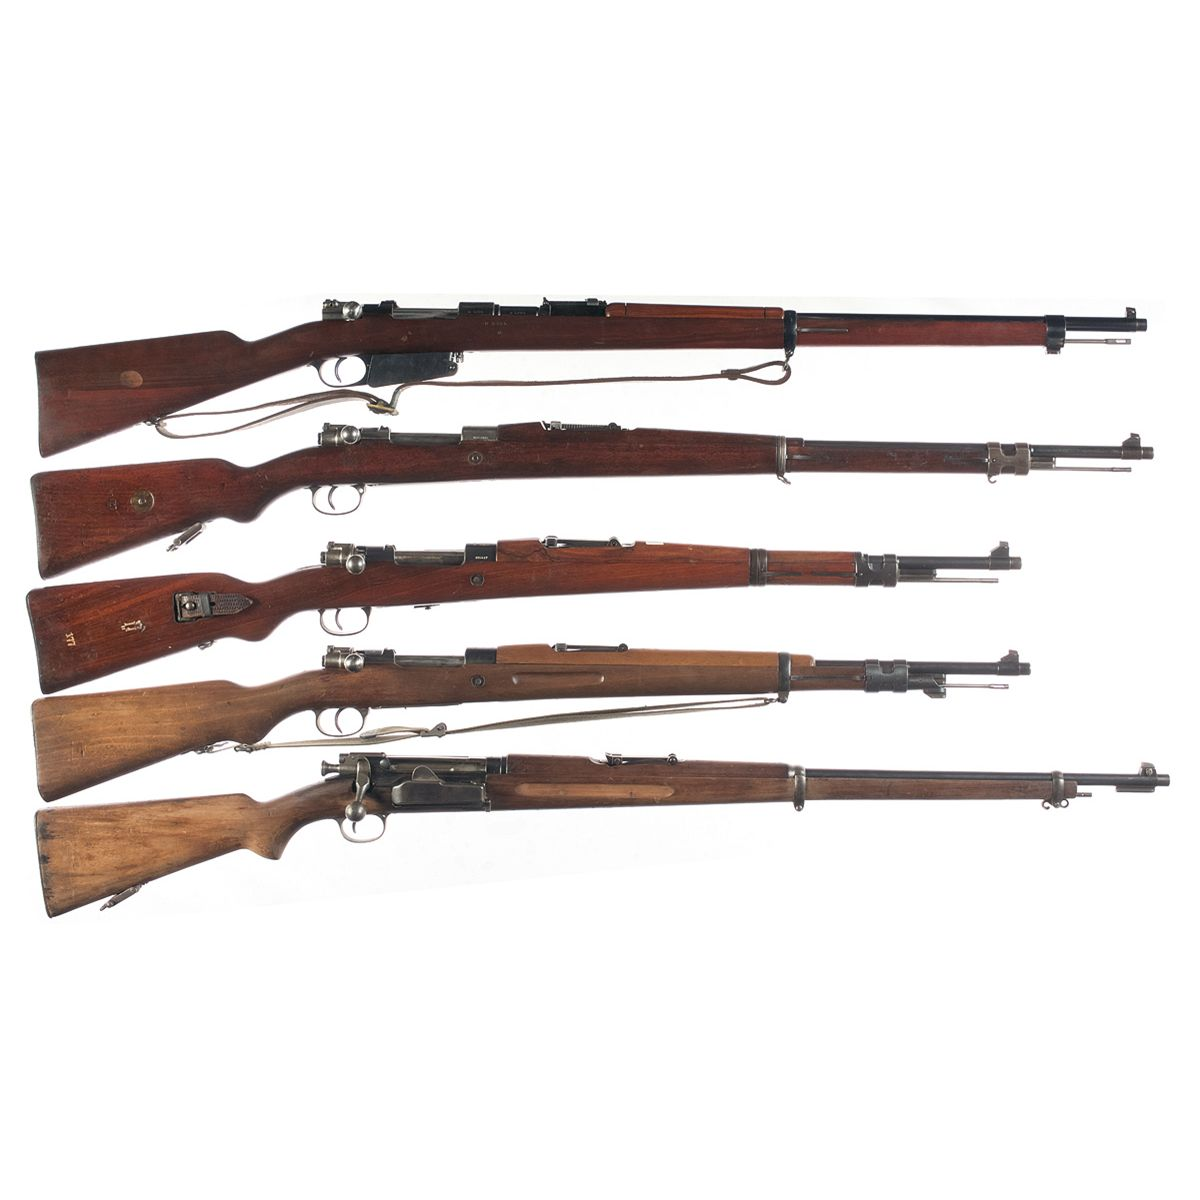 Five Bolt Action Military Rifles -A) Argentine Mauser Model 1891 Bolt  Action Rifle